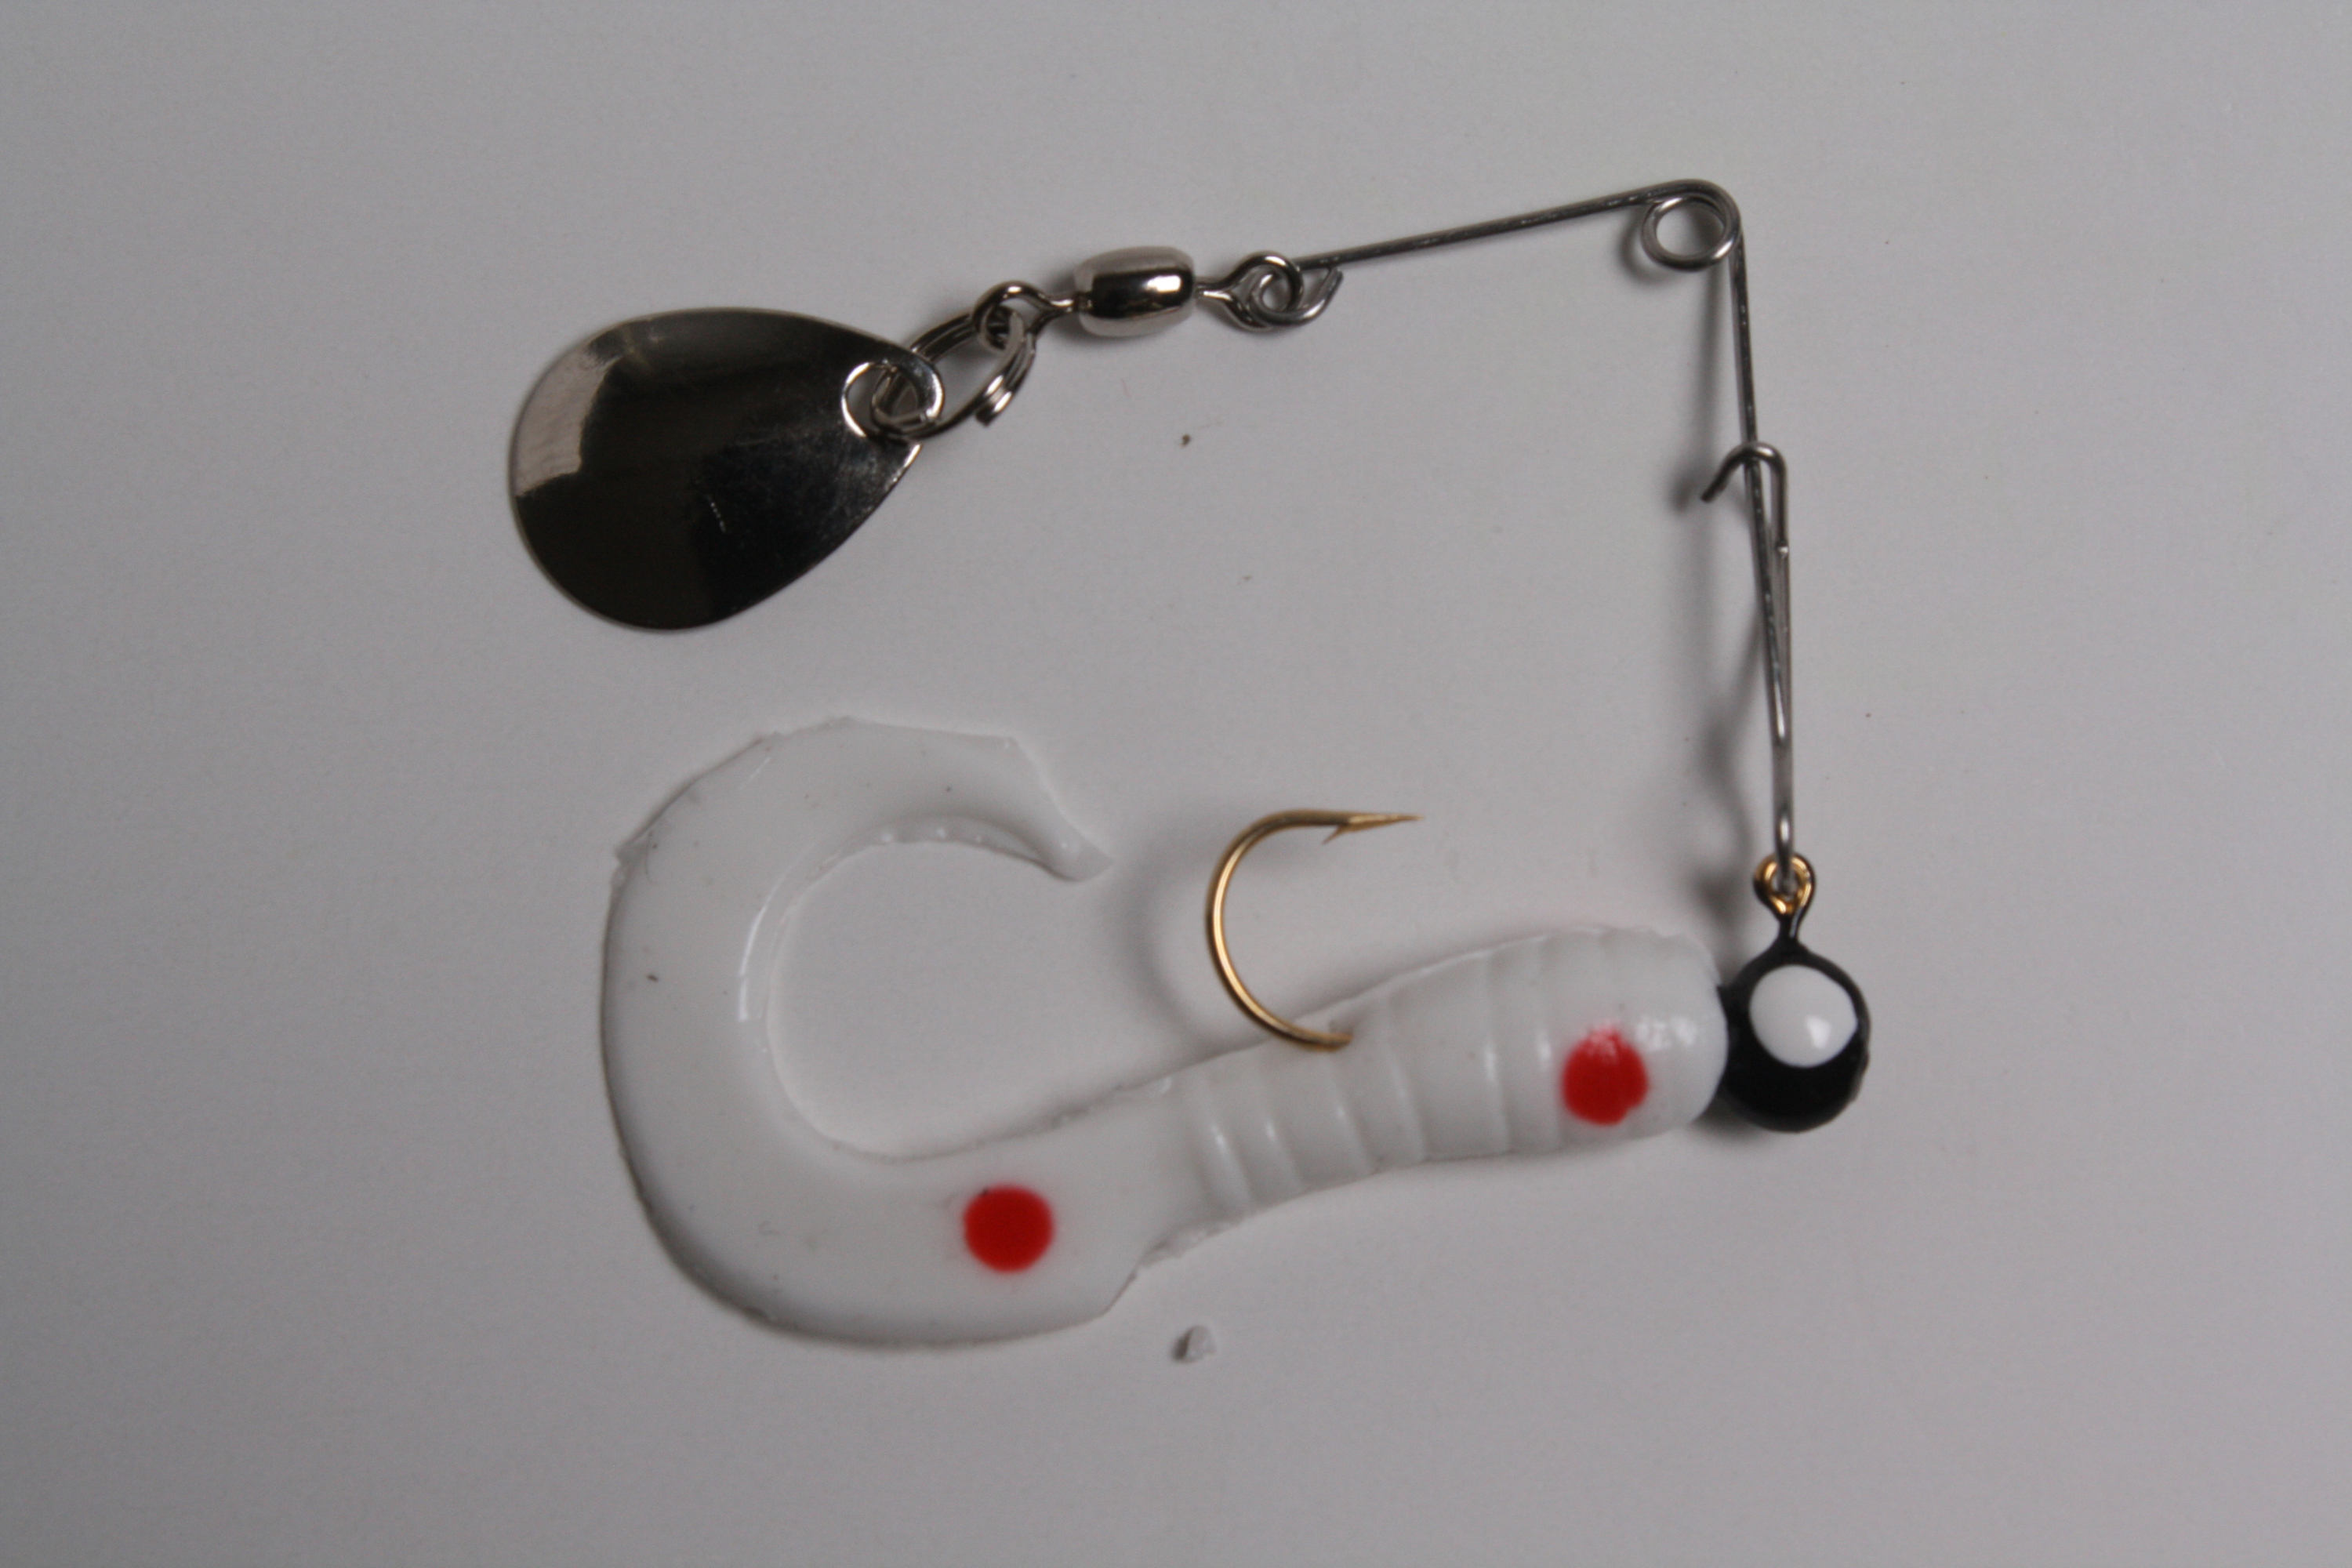 Betts 021CT-35N Spin Curl Tail Lure 1 1/2